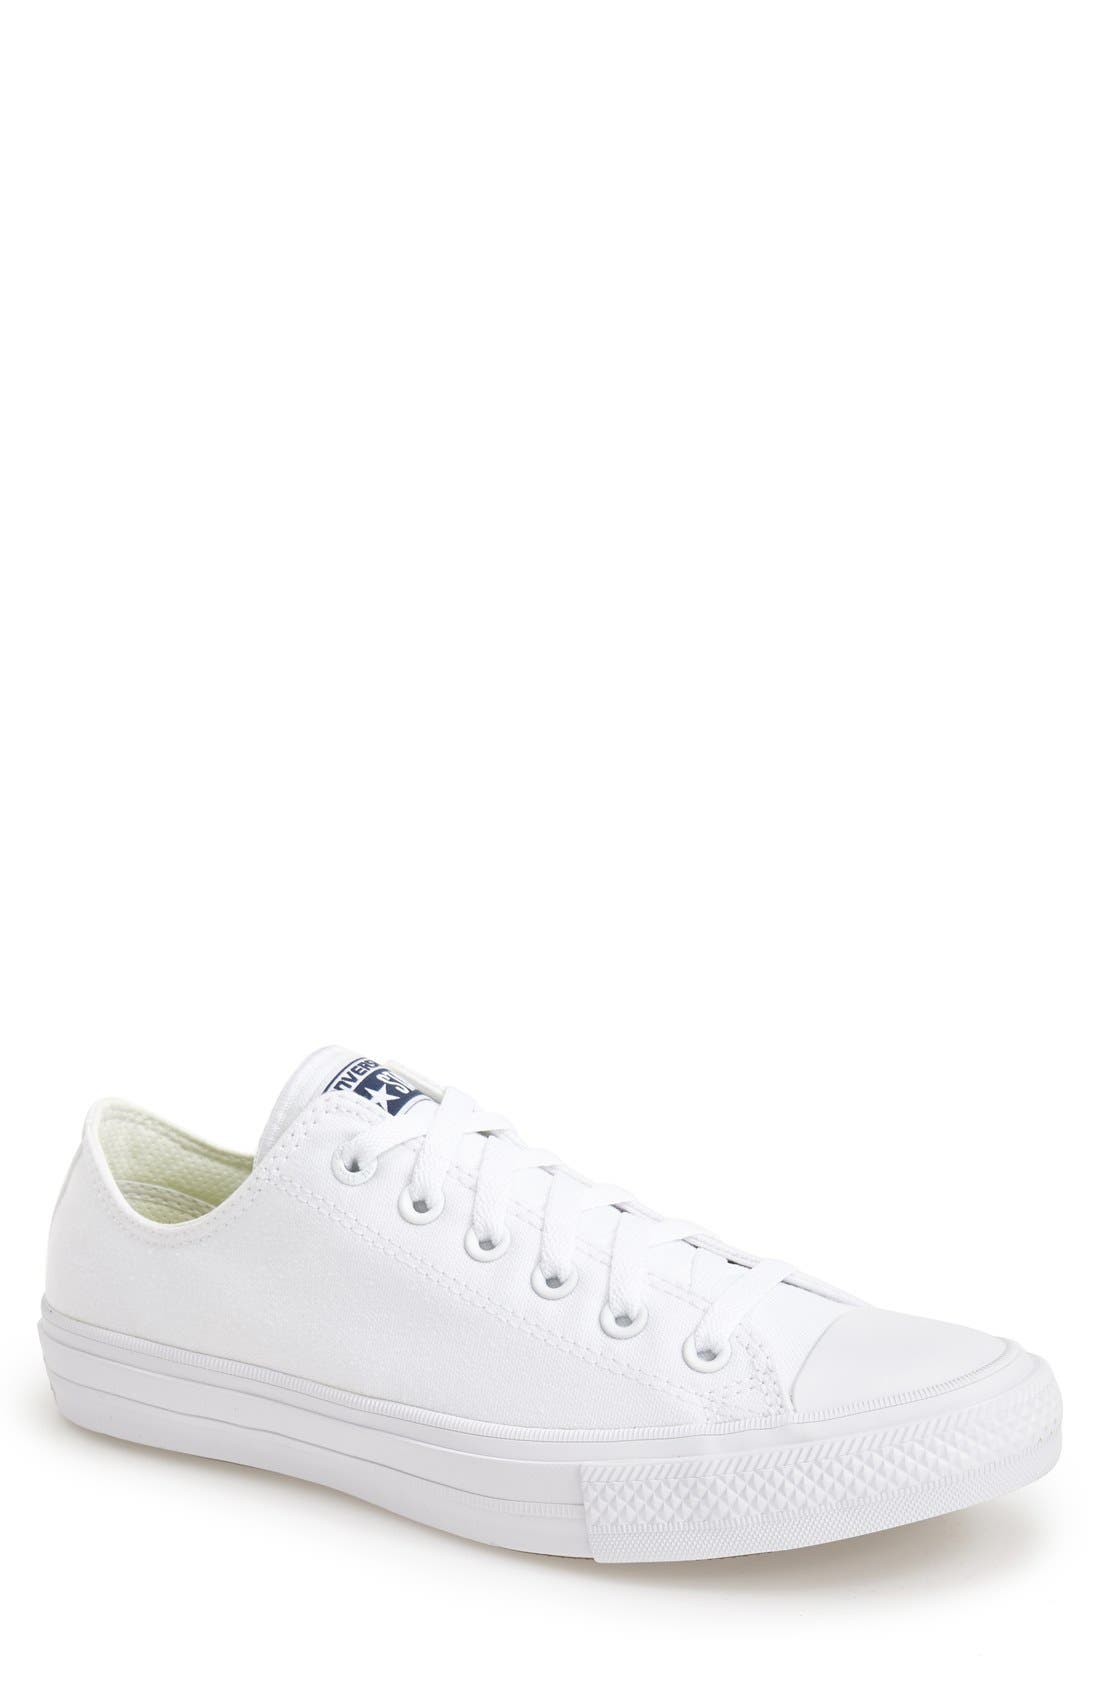 Chuck Taylor<sup>®</sup> All Star<sup>®</sup> II 'Ox' Canvas Sneaker,                             Main thumbnail 5, color,